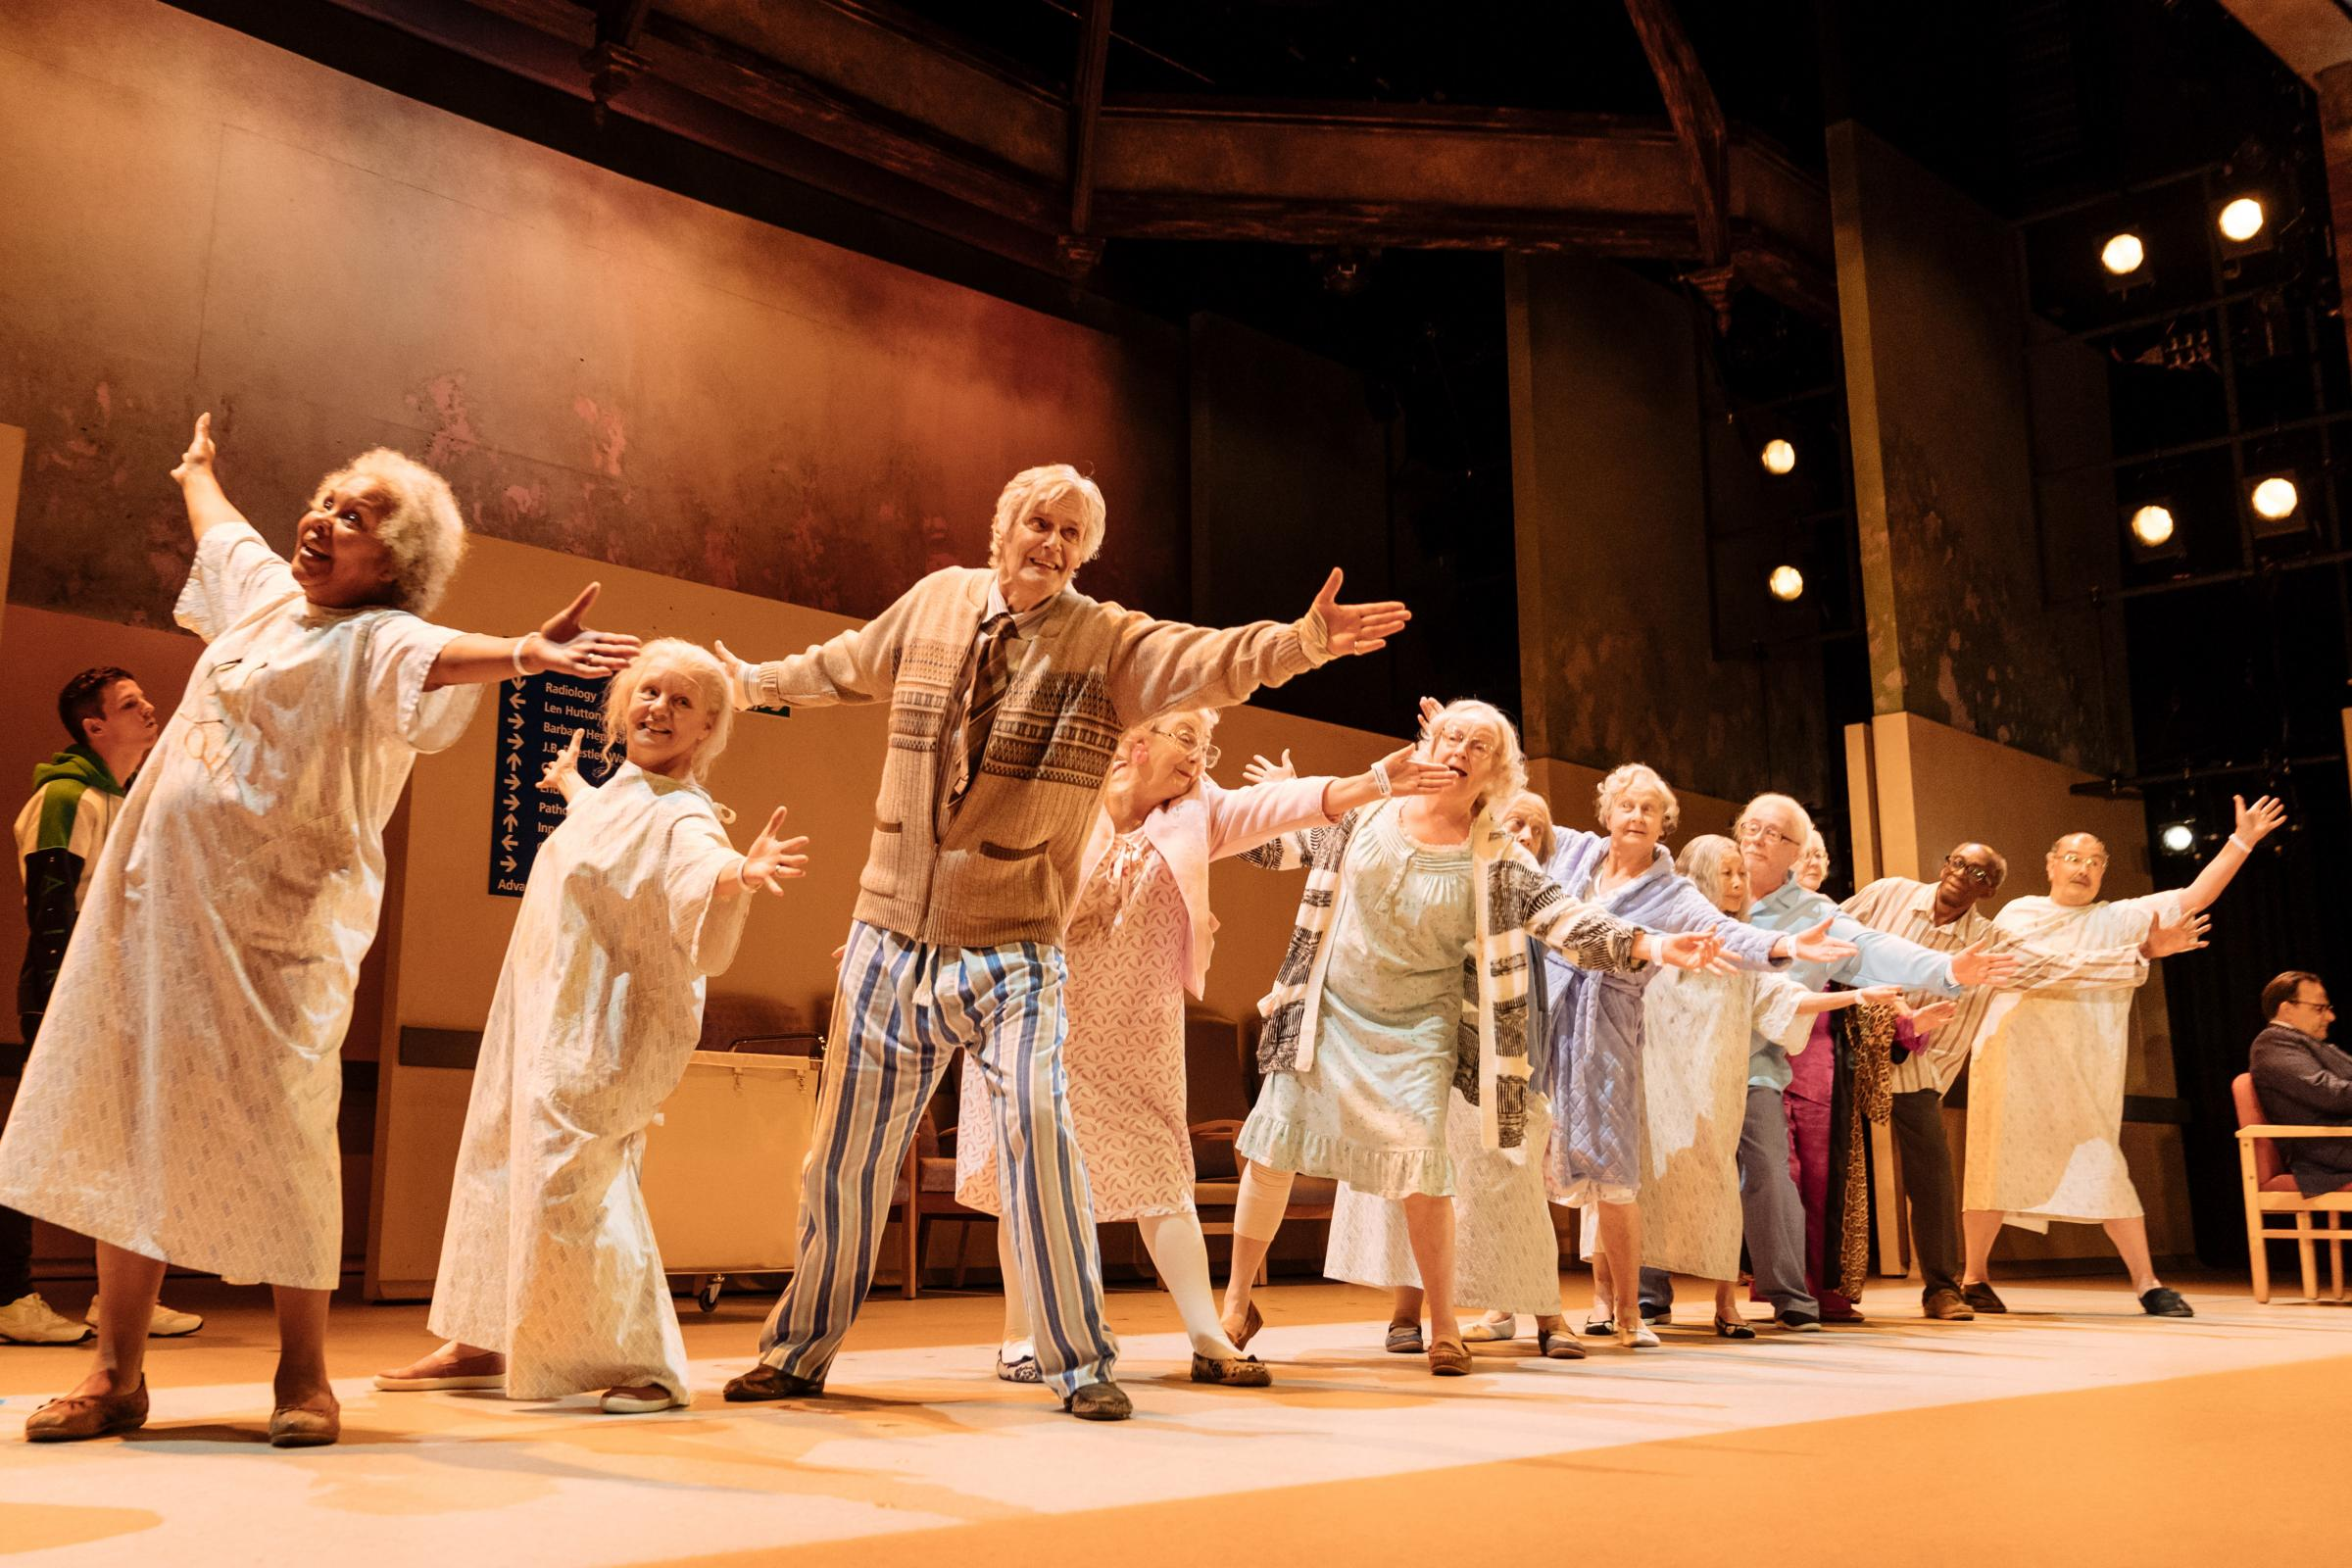 Alan Bennett's new play Allelujah! is to be screened at Cardigan's Theatr Mwldan